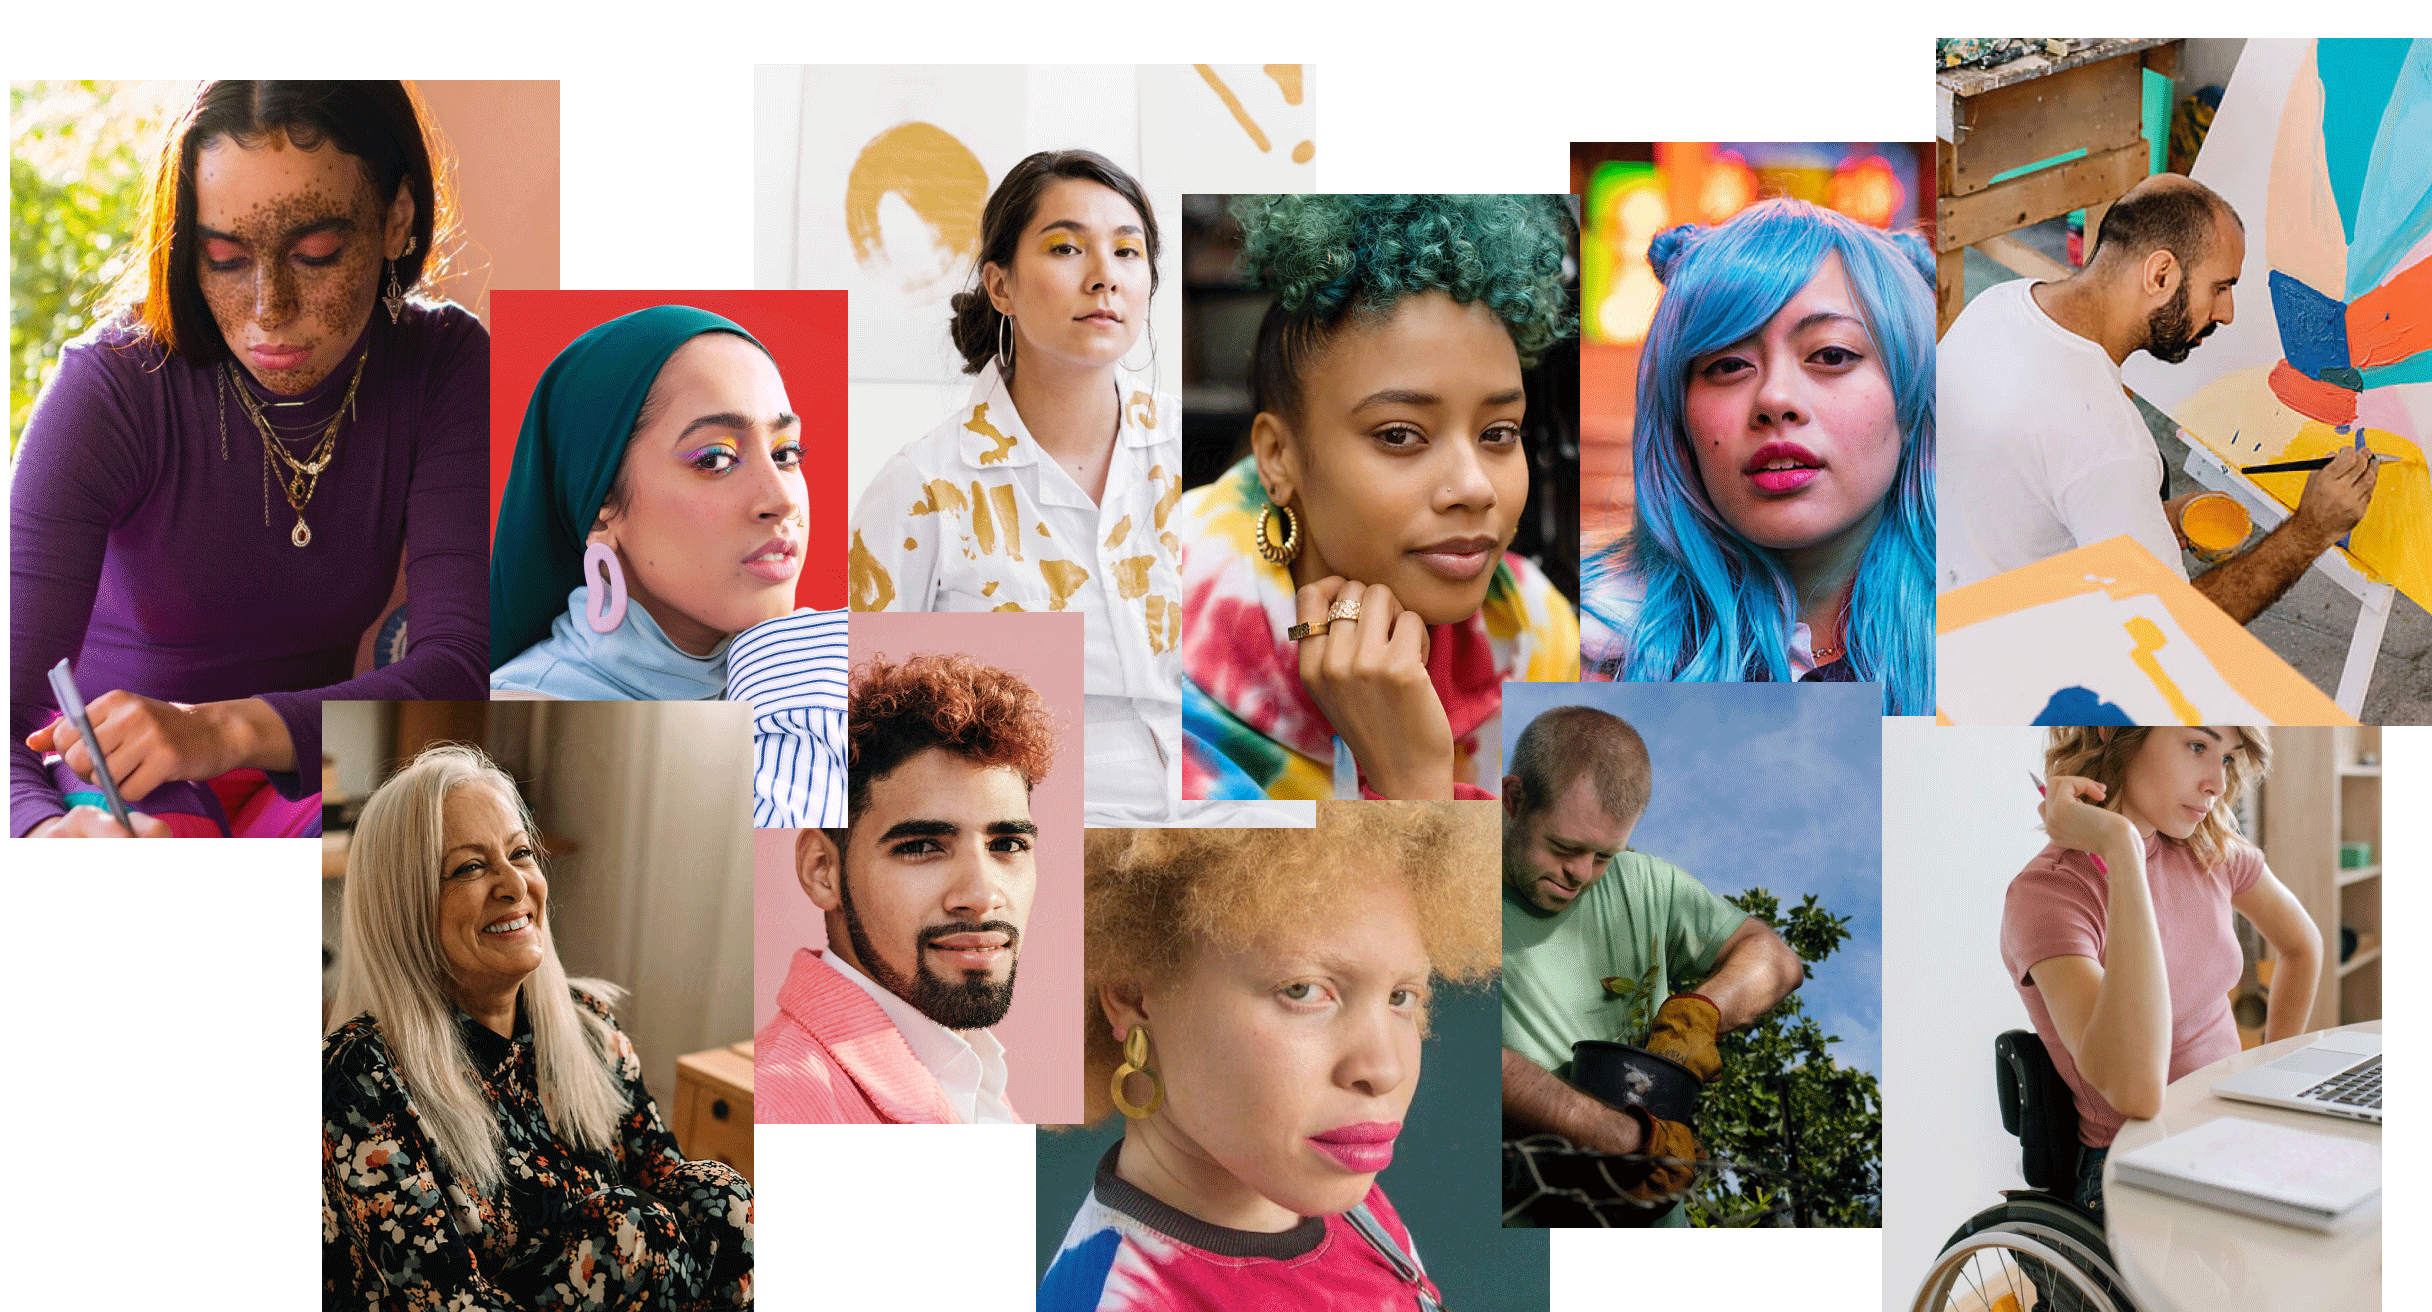 A collage of people depicting diverse races, ethnicities, genders, ages and abilities